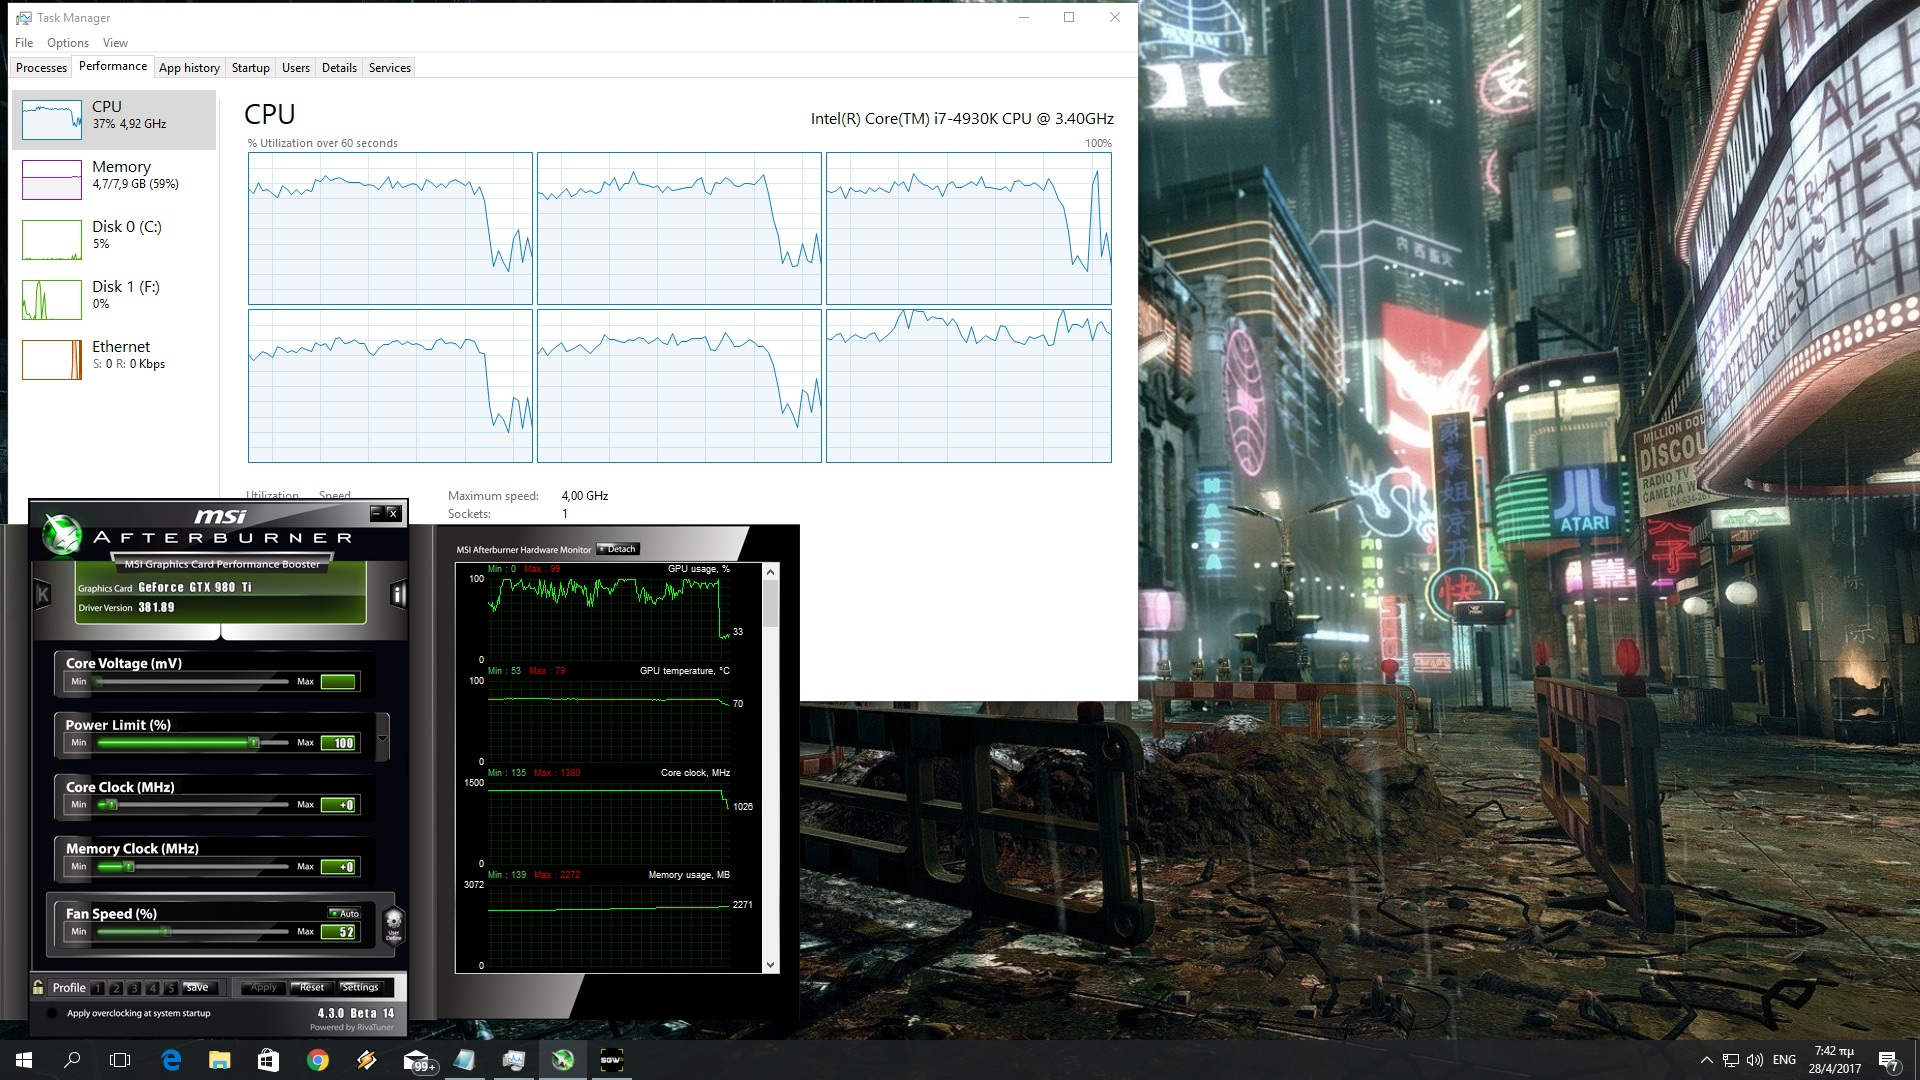 For this PC Performance Analysis, we used an Intel i7 4930K (overclocked at  4.2Ghz) with 8GB RAM, NVIDIA's GTX980Ti and GTX690, Windows 10 64-bit and  the ...